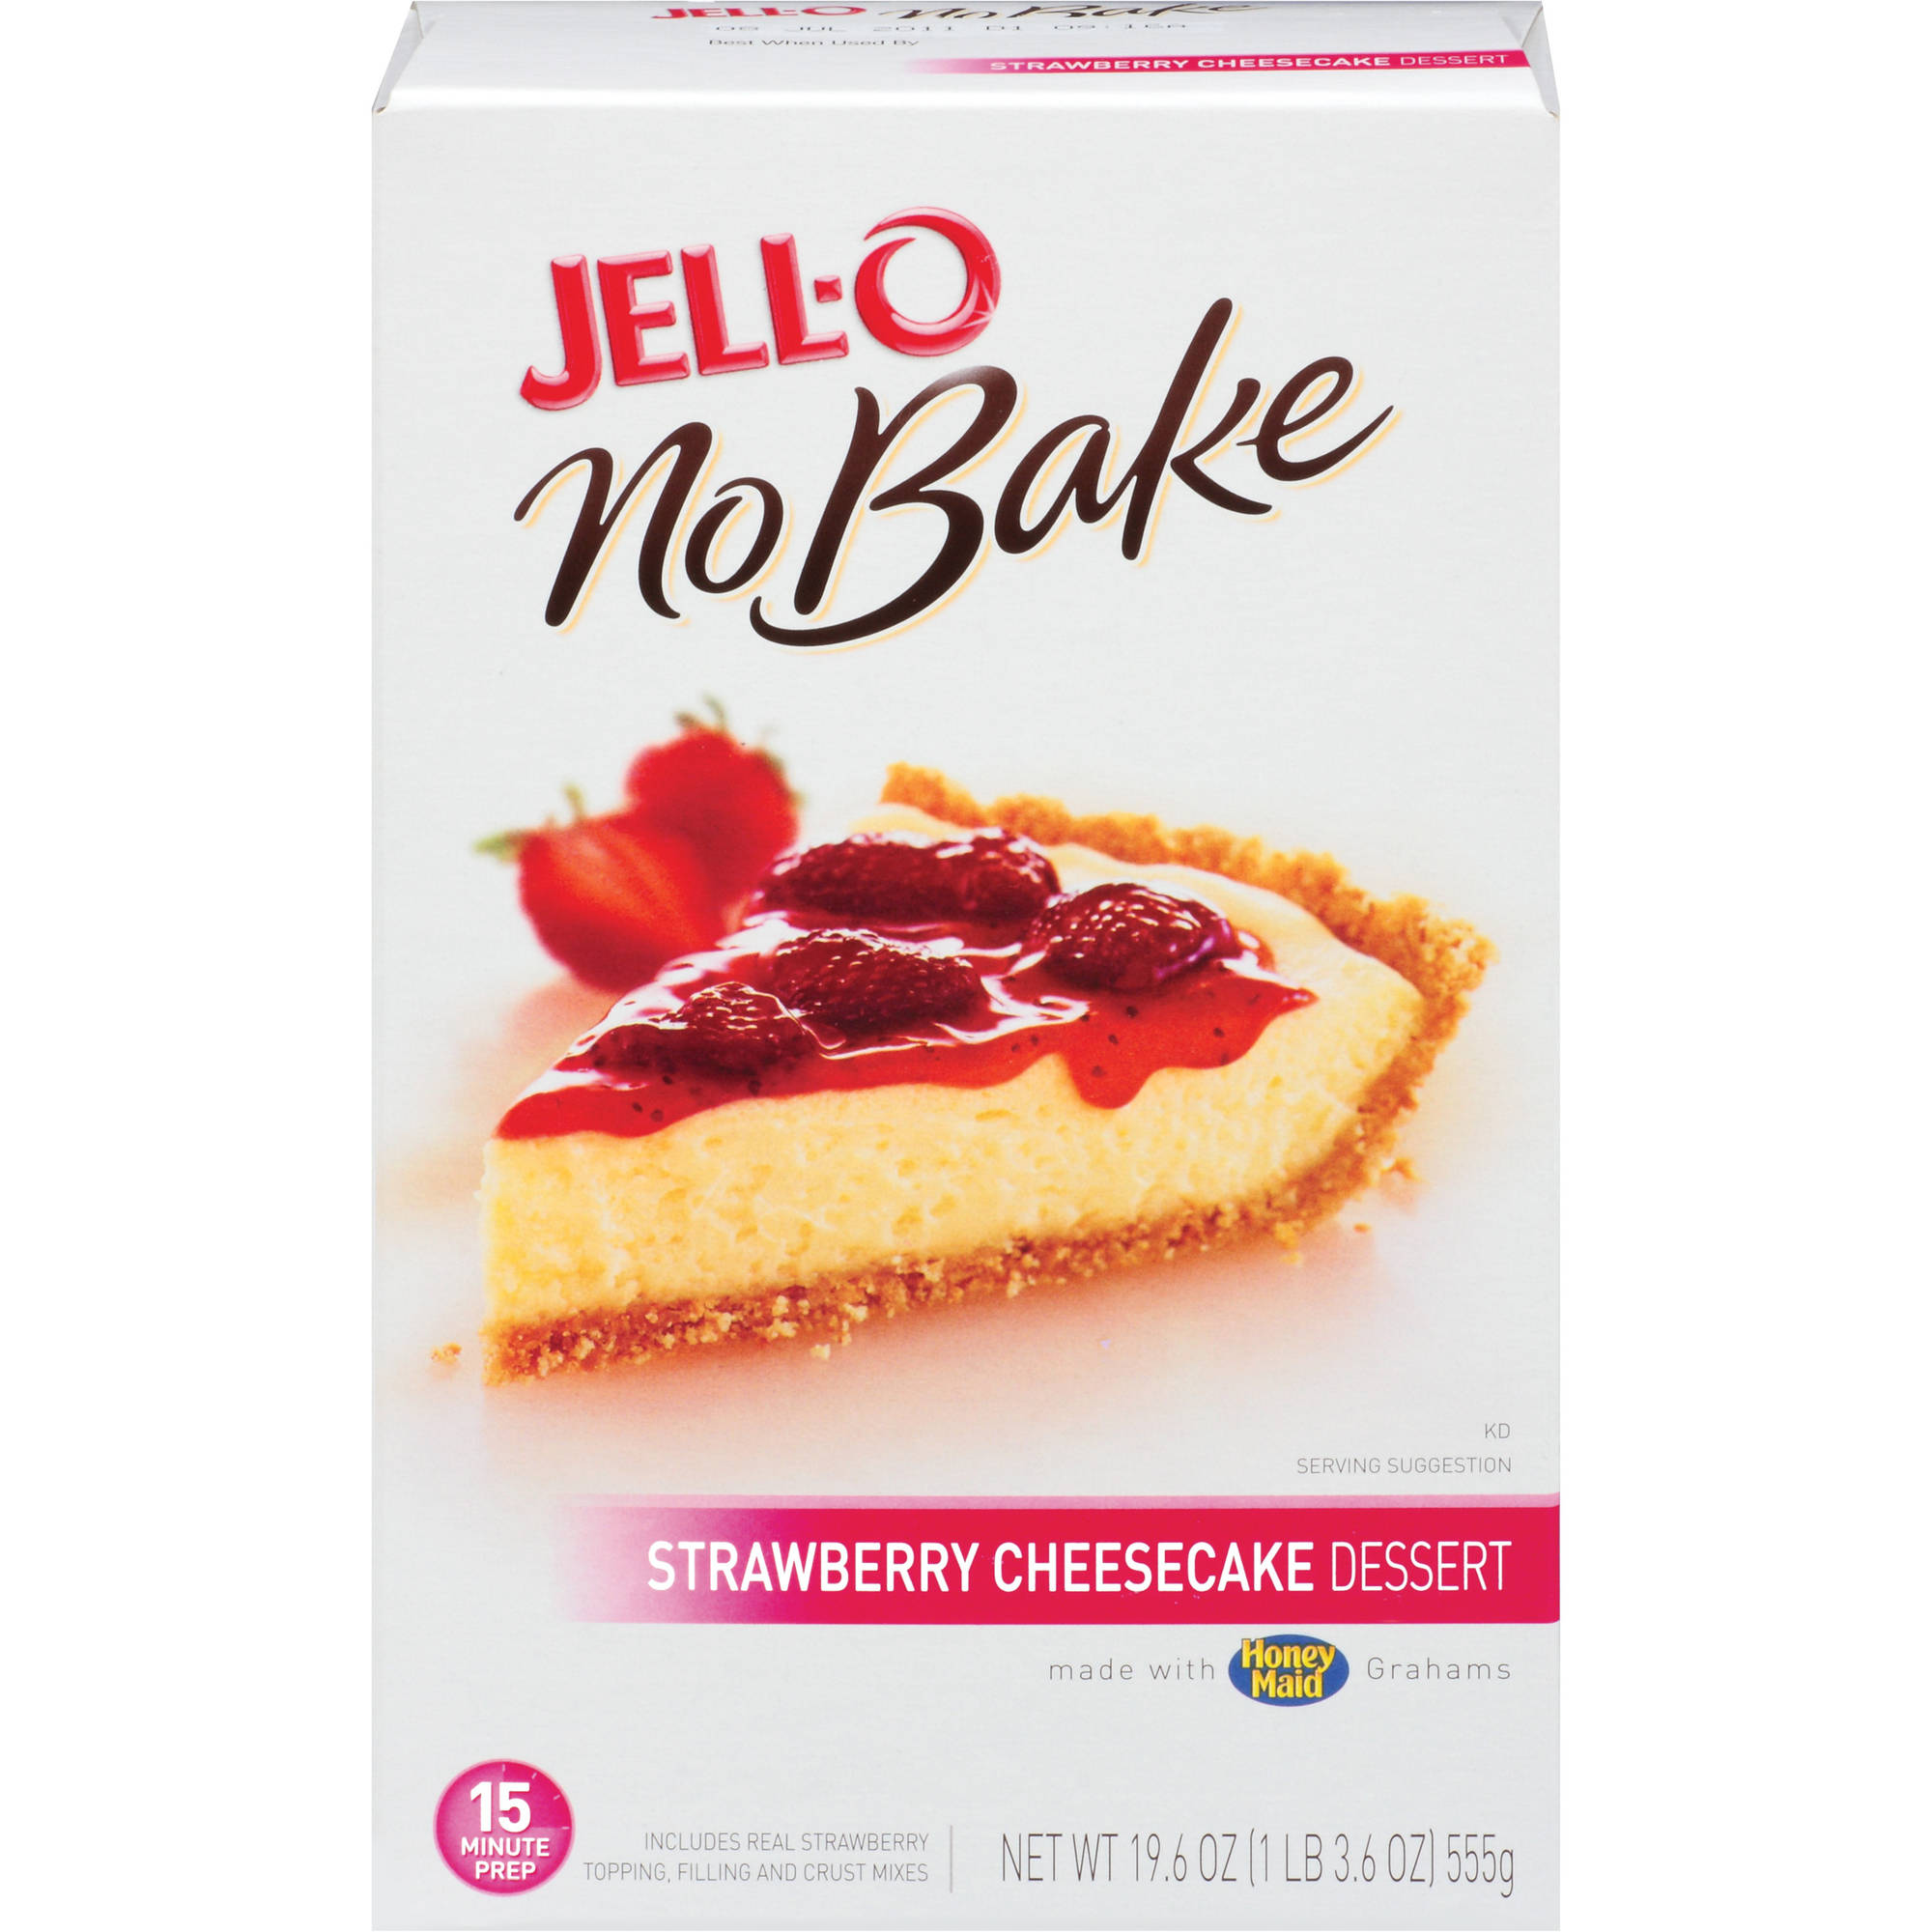 Jell-O No Bake Strawberry Cheesecake Dessert Mix, 19.6 Ounce by Jell-O